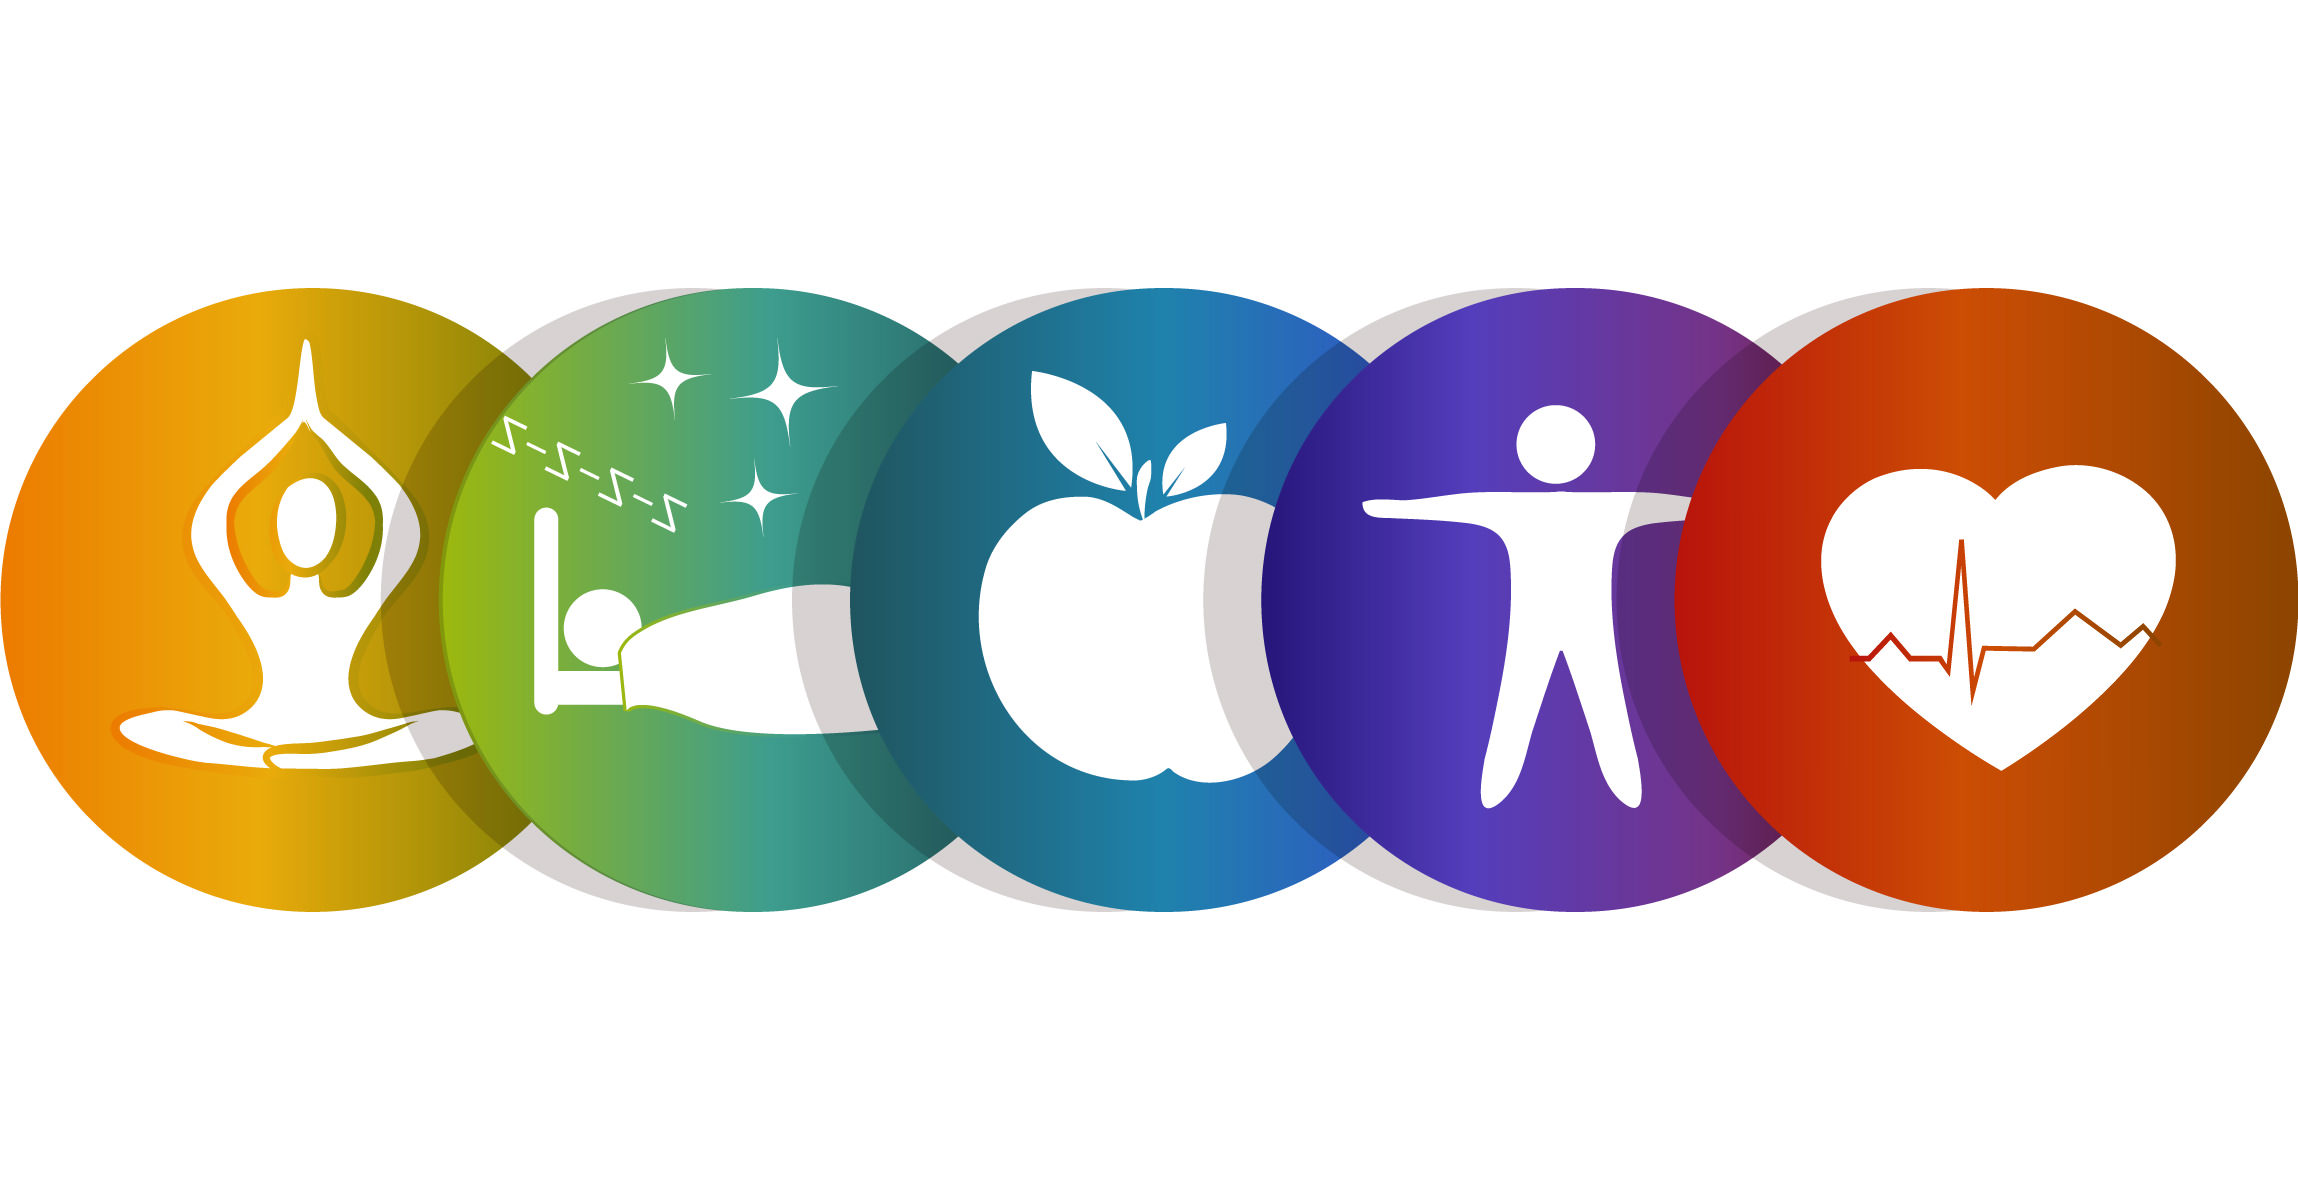 Company Wellness Program Clip Art